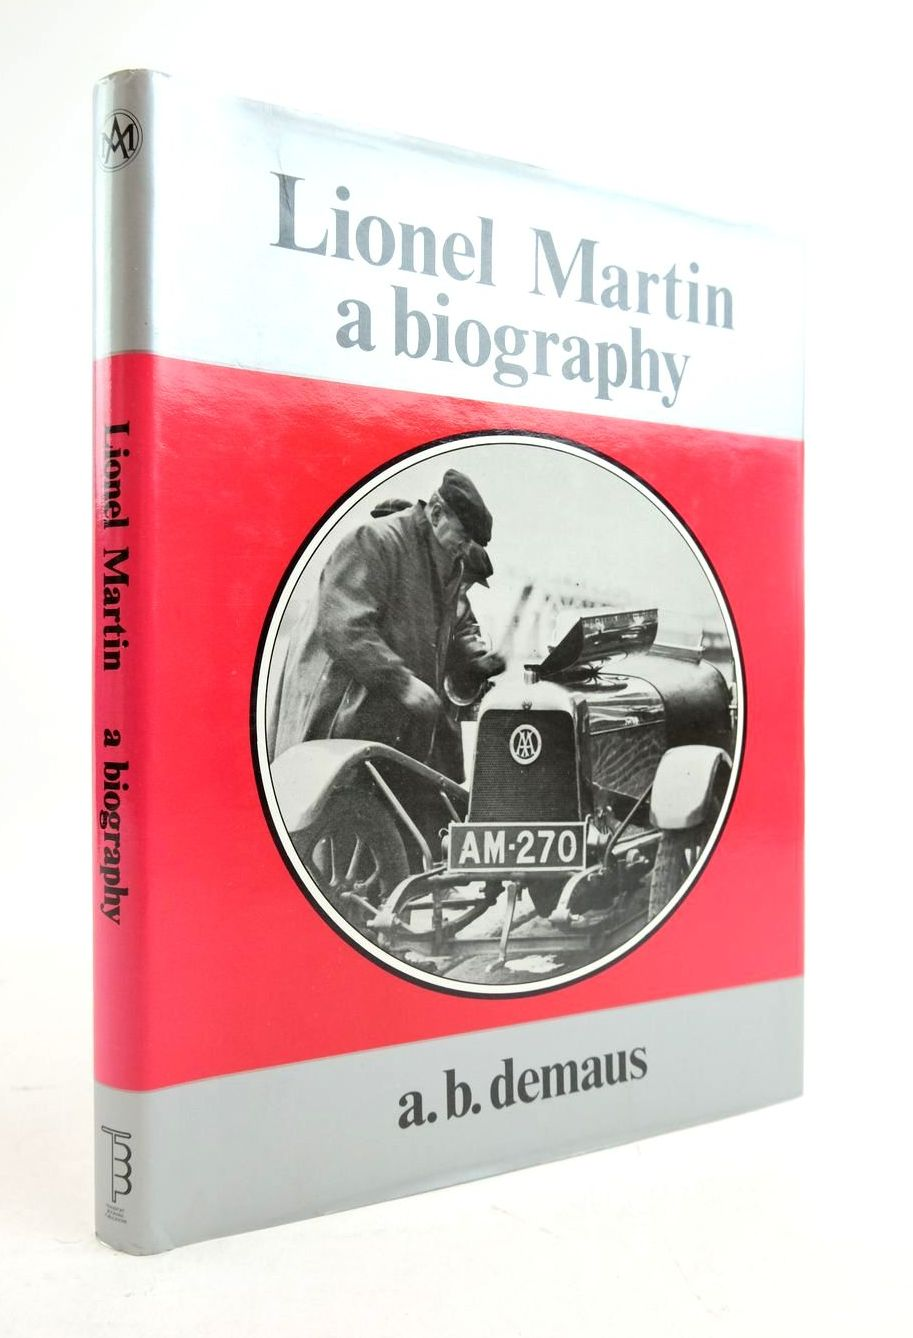 Photo of LIONEL MARTIN: A BIOGRAPHY written by Demaus, A.B. published by Transport Bookman Publications (STOCK CODE: 1821698)  for sale by Stella & Rose's Books